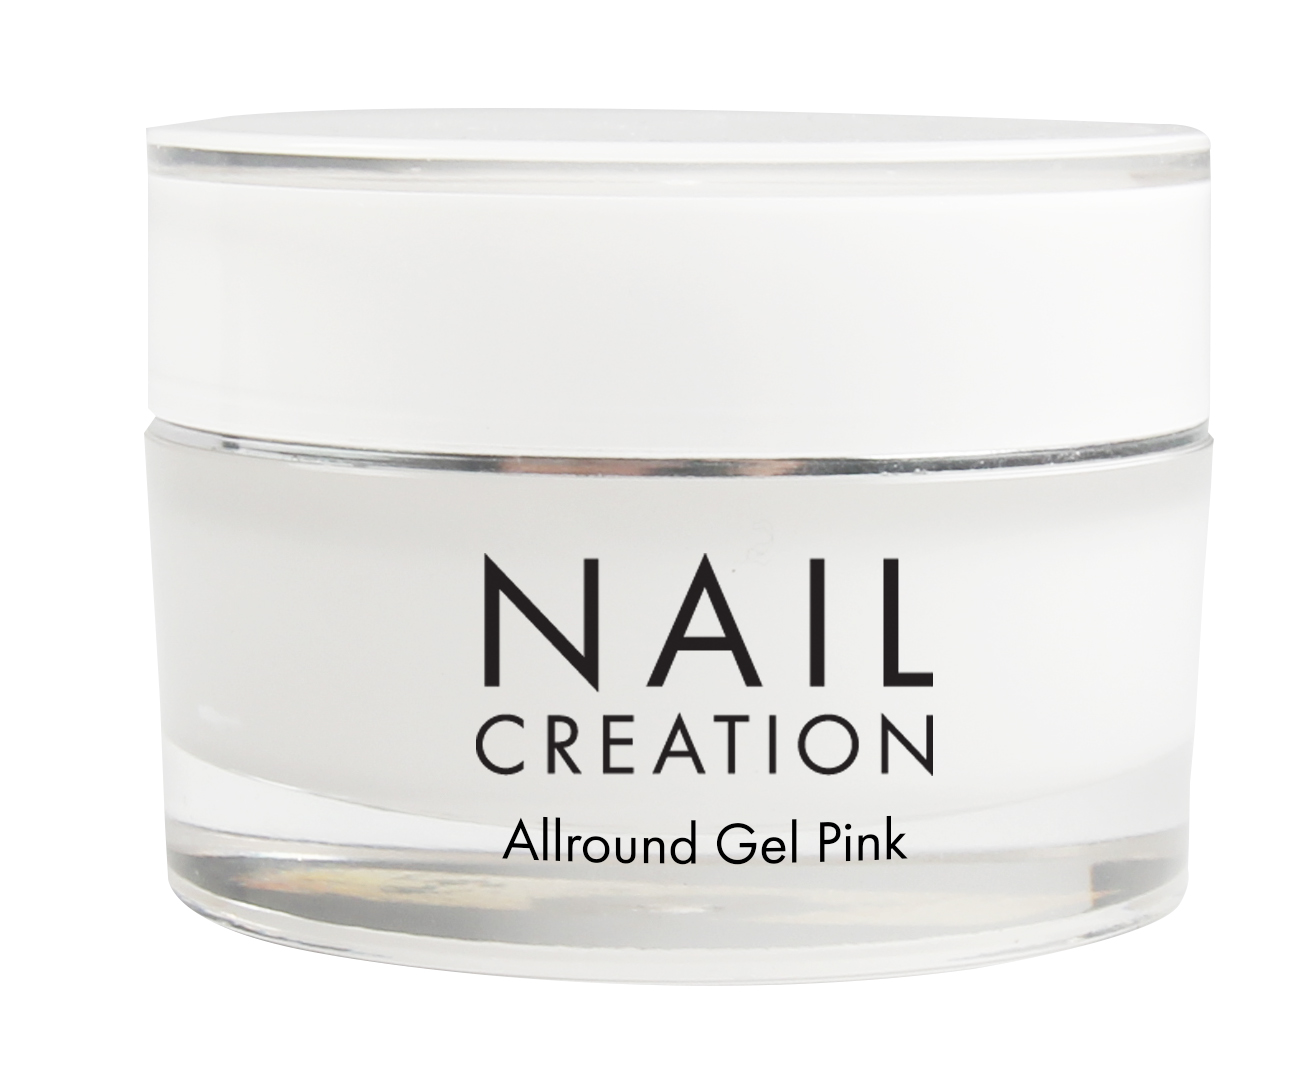 Afbeelding van Nail Creation Allround Gel - Pink